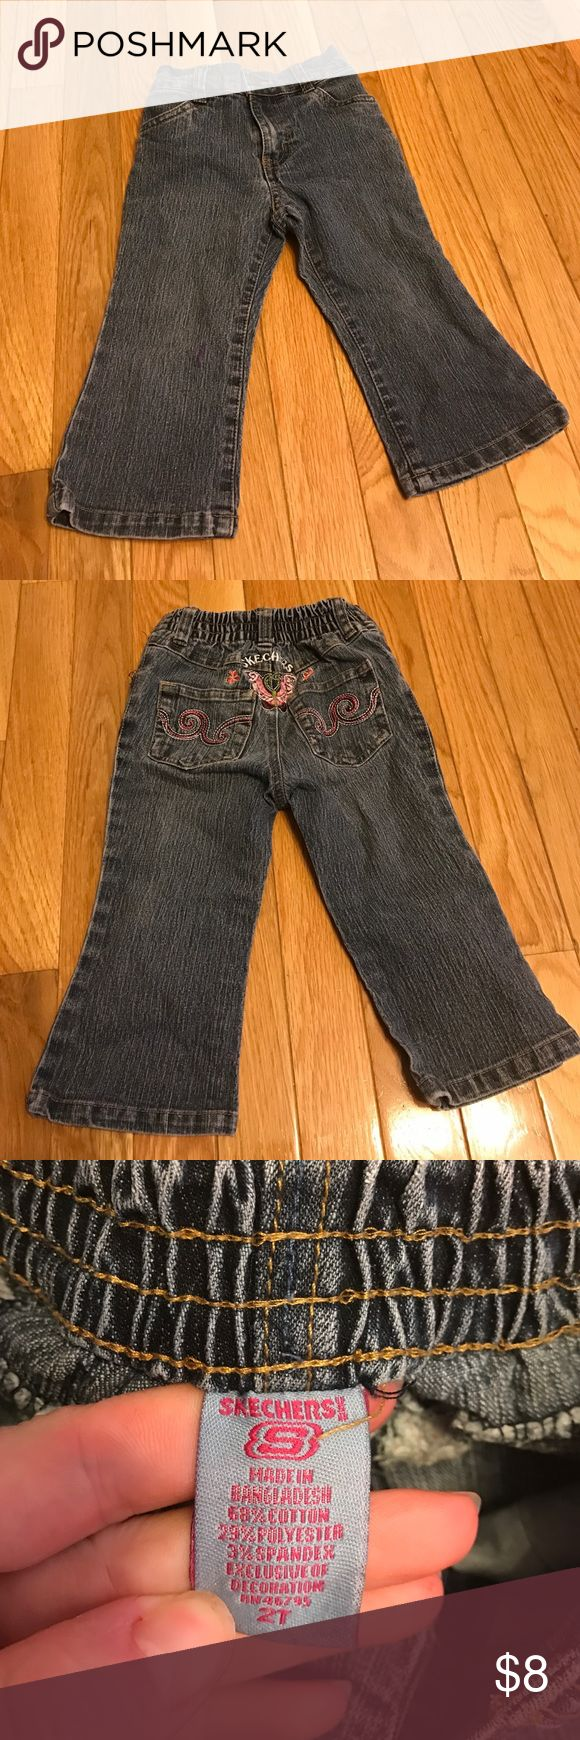 Girls Skechers jeans size 2t Girls size 2t Skechers jeans. Purple stain on front right leg (picture). Otherwise in great used condition, no tears or rips Skechers Bottoms Jeans